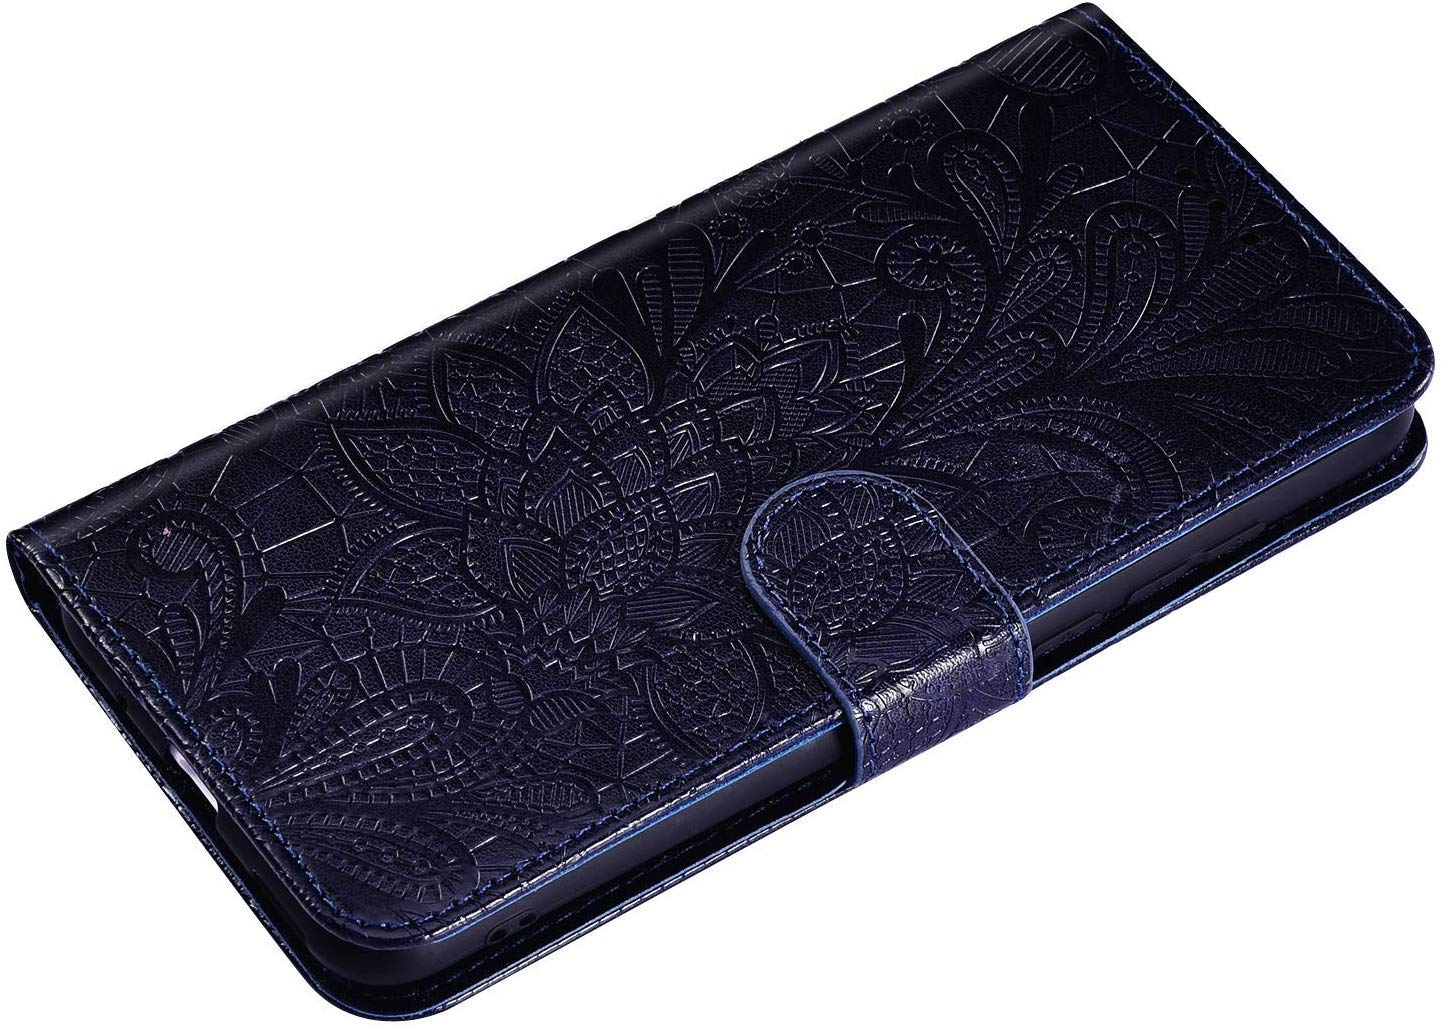 IKASEFU Compatible with iPhone 11 6.1 inch Case Emboss Lace flower Pu Leather Wallet Strap Case with Card Holder Slots Shockproof Magnetic Stand Folio Flip Book Protective Bumper Cover,dark blue